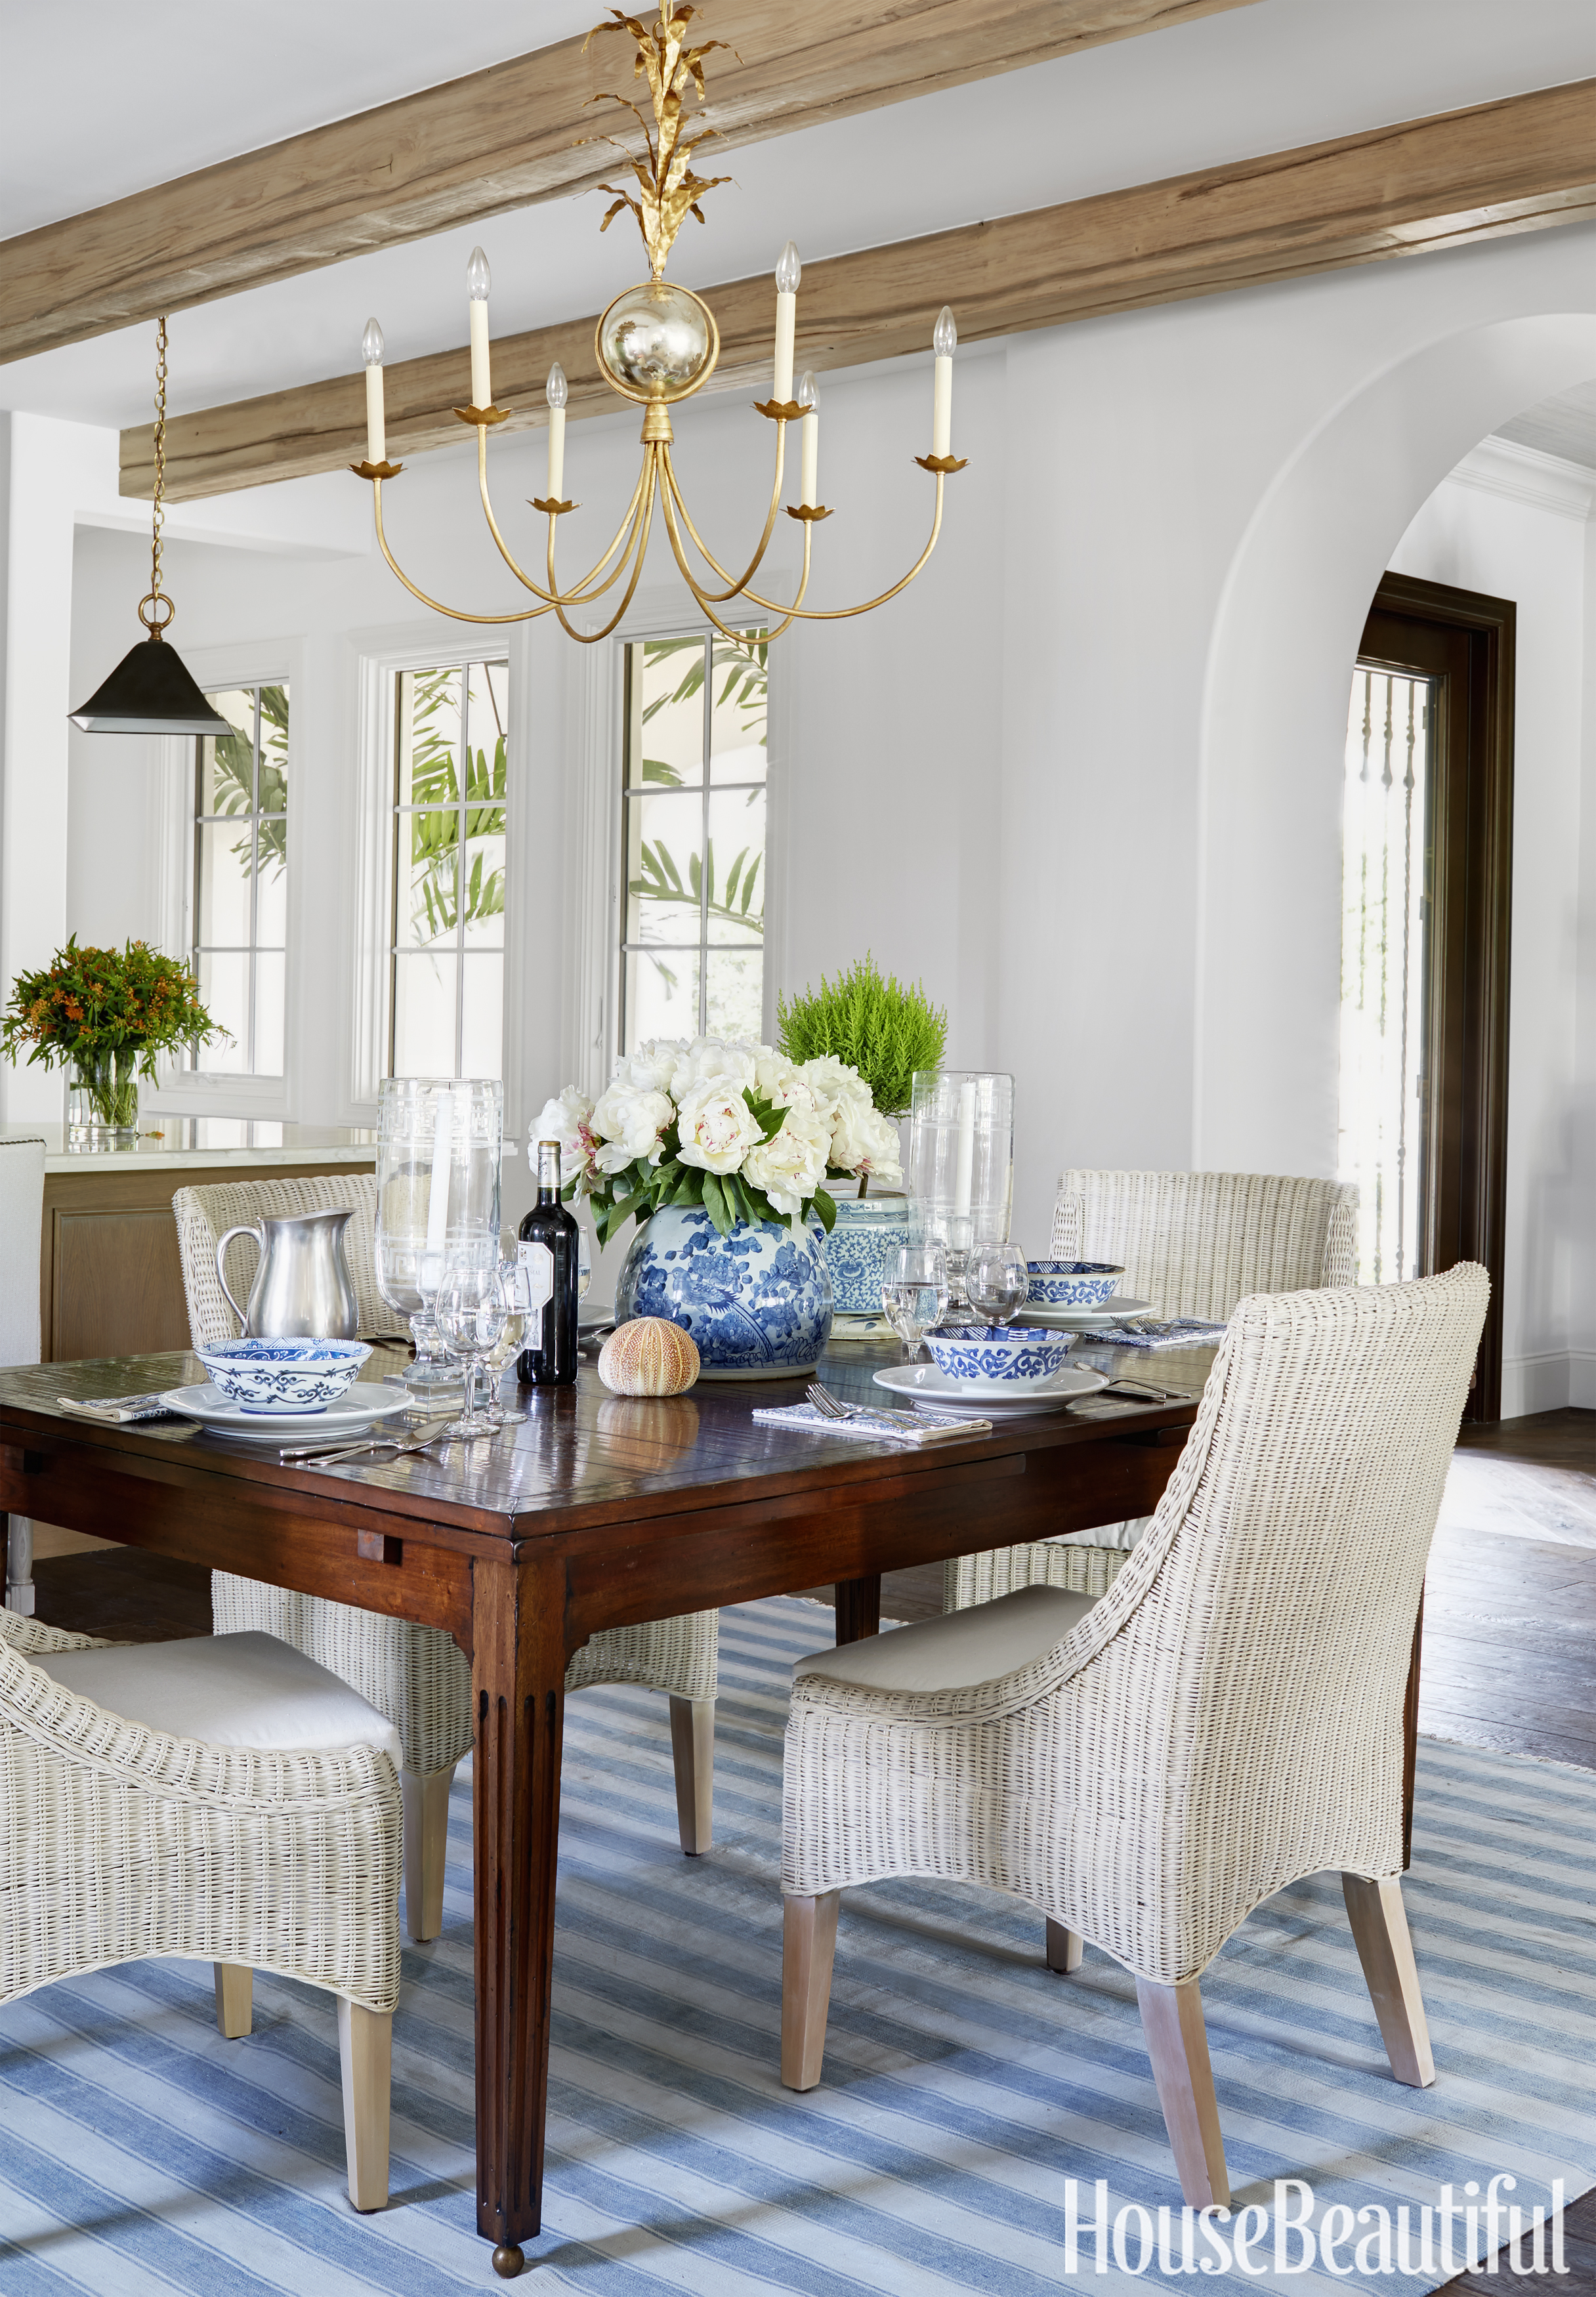 60 Best Dining Room Decorating Ideas and Pictures